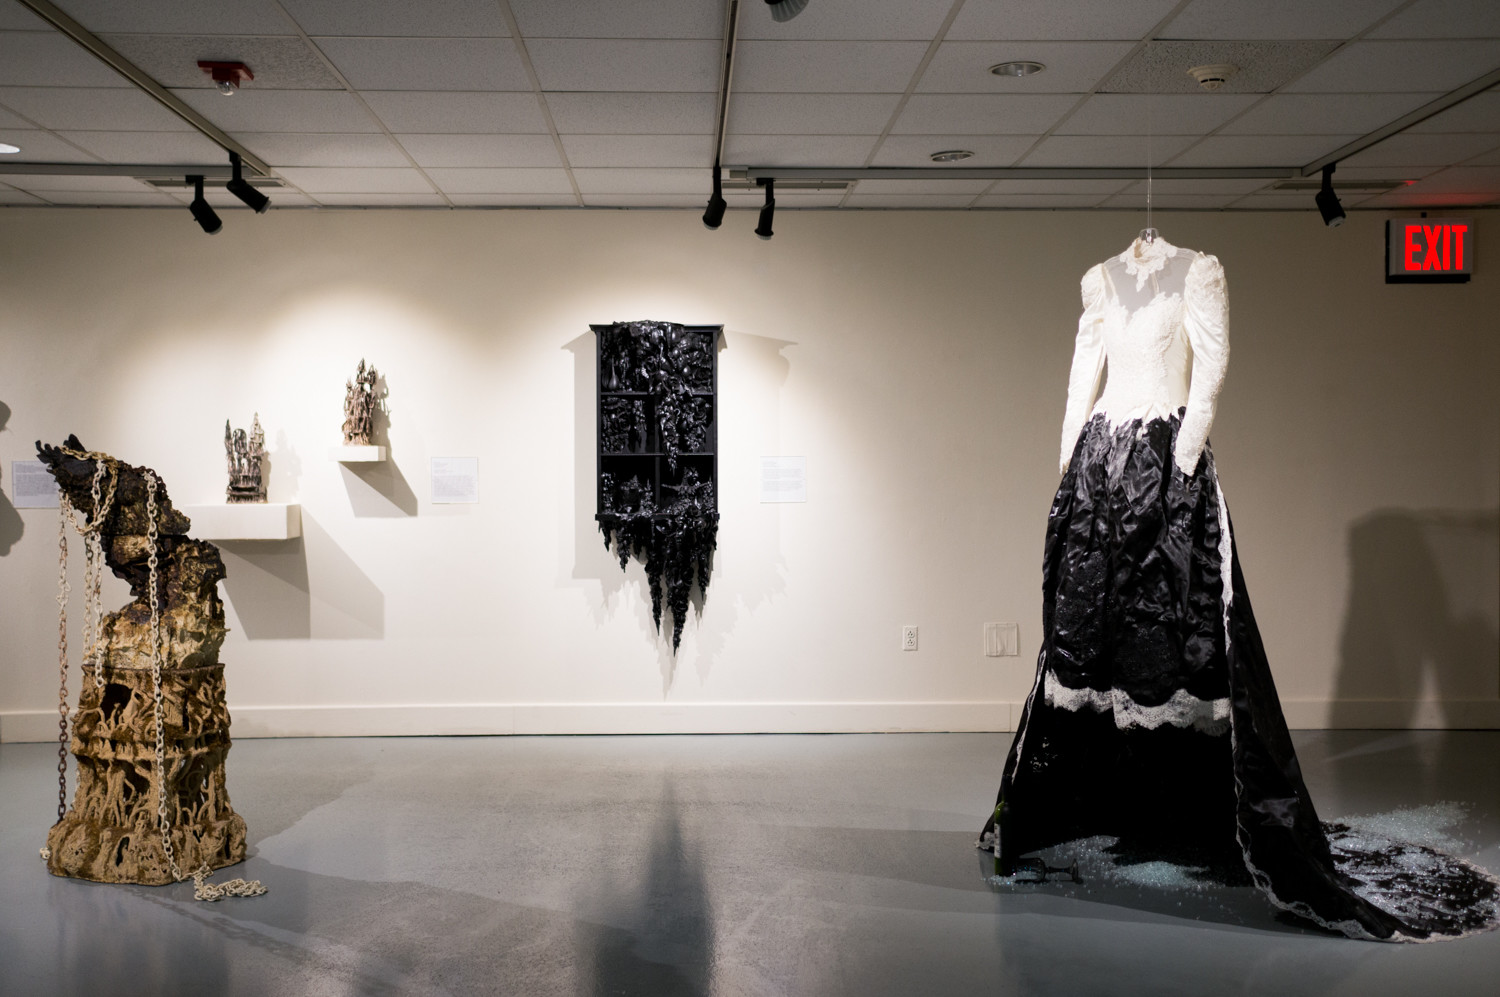 The artist Jeffrey Ampratwum created the sculpture 'Untitled' specifically for the exhibition 'It Was a Dark and Stormy Night' at Lehman College. The exhibition brings together gothic-themed artwork by 34 artists and is on display through Feb. 10.